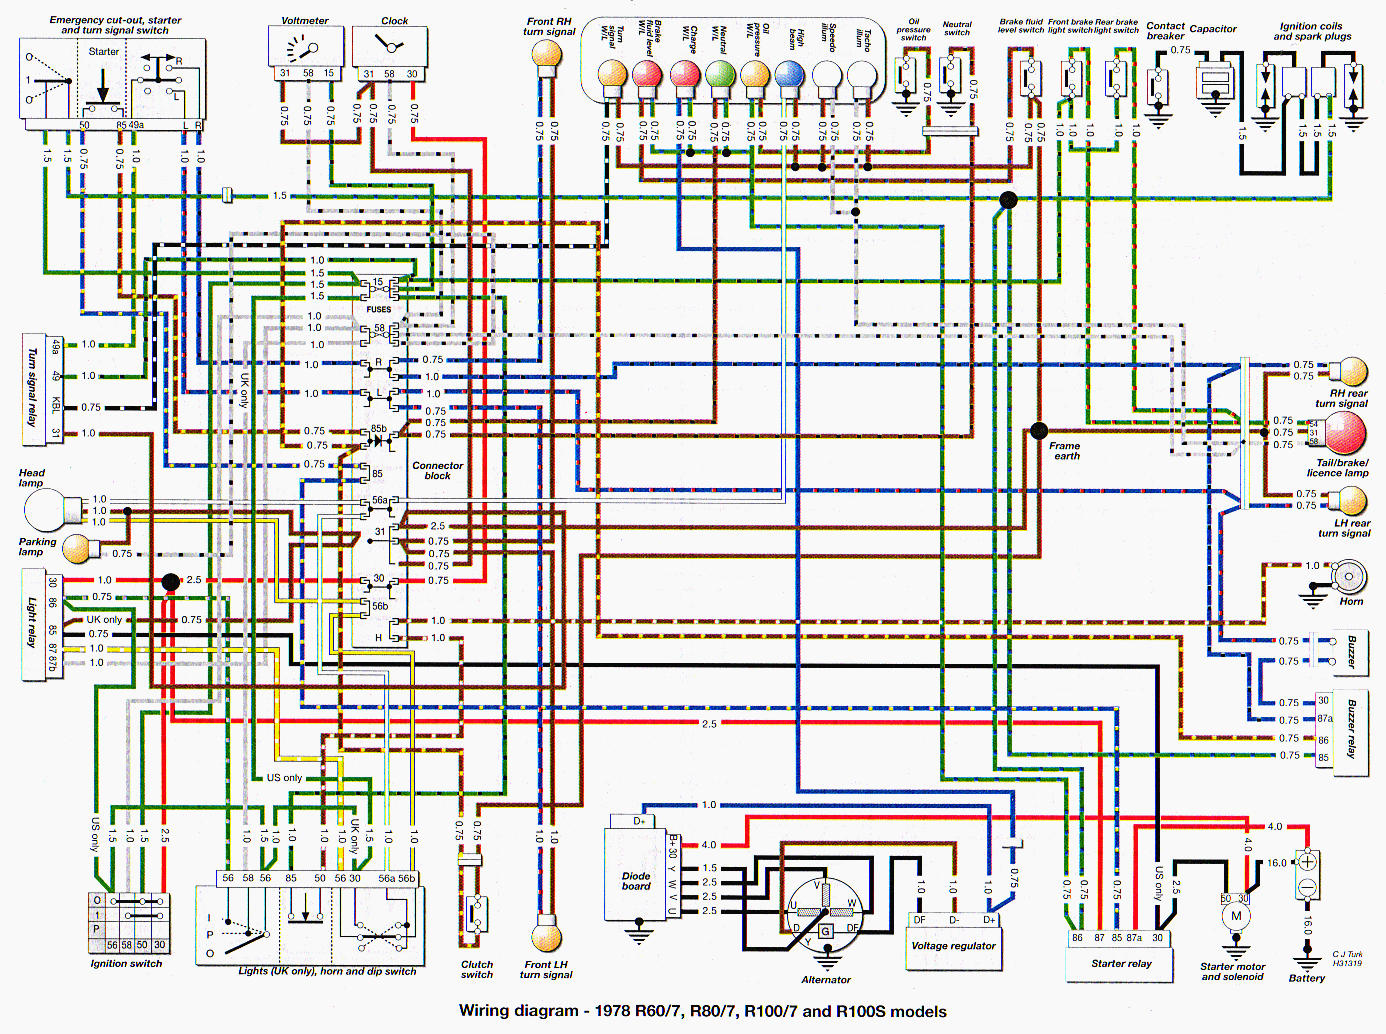 oil pressure switch wiring diagram how to home and more http www omnilex com public bmw78 78r100wire jpg the says wire